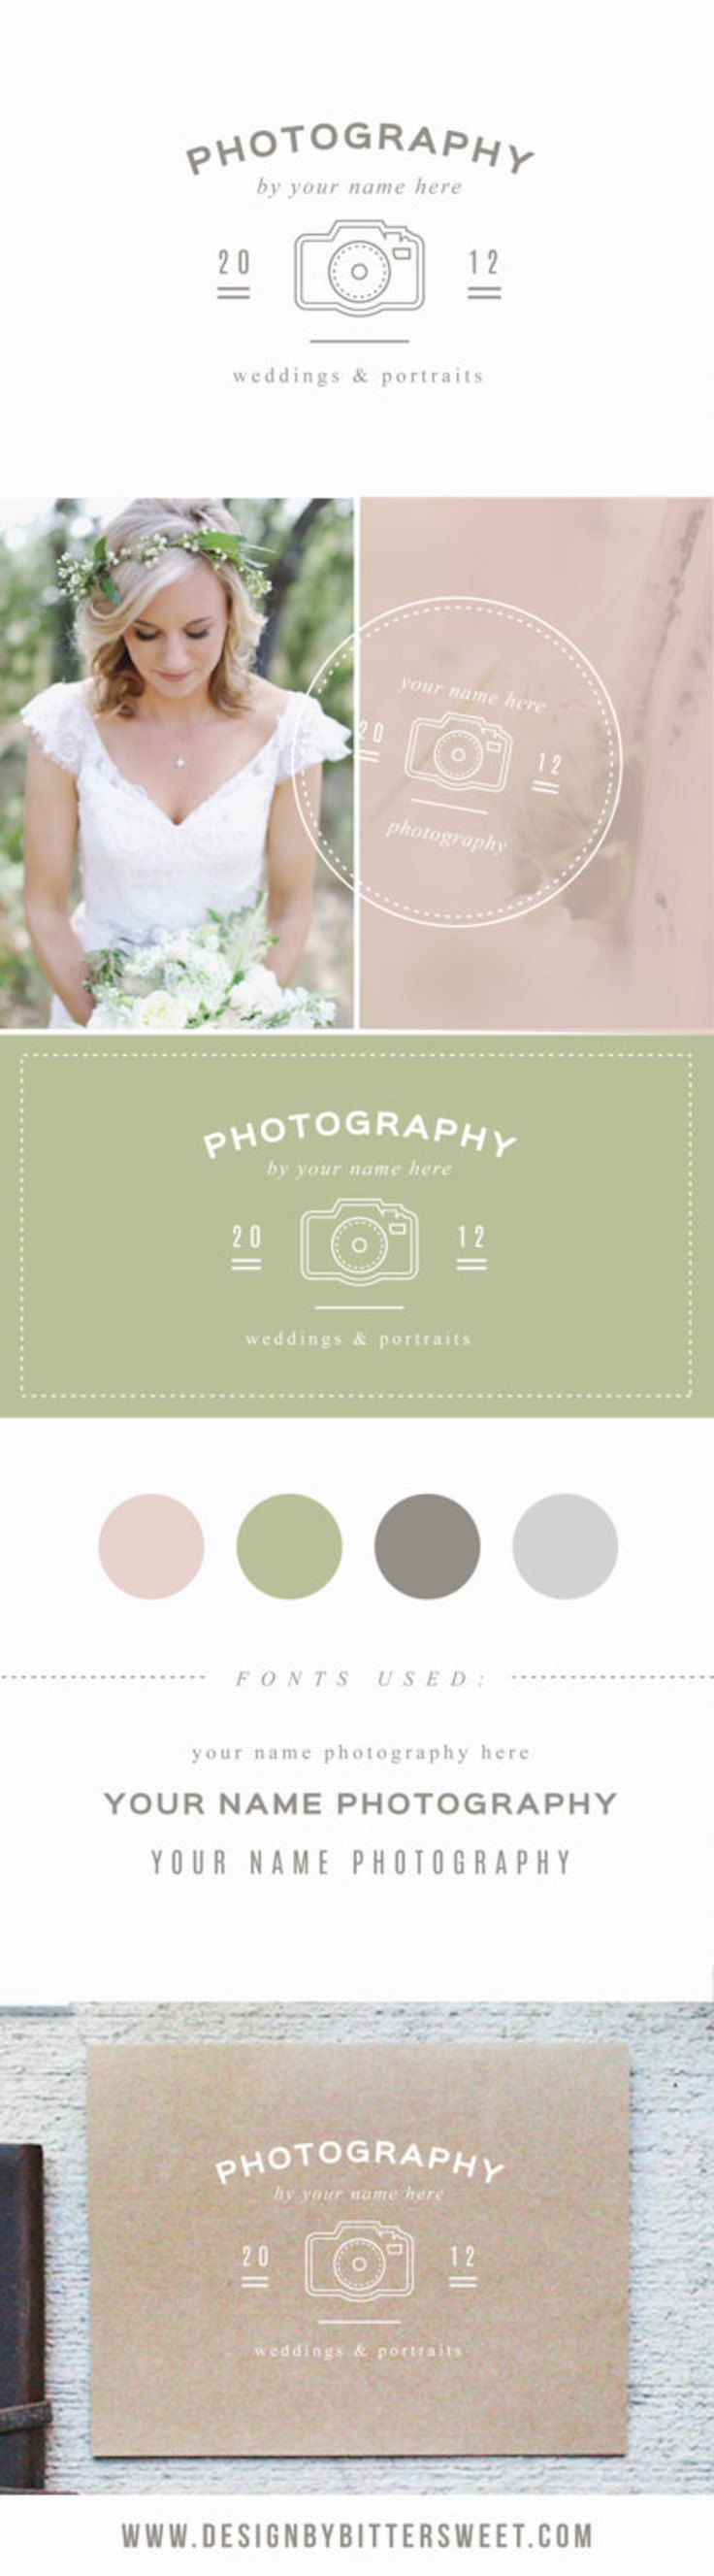 Start rebranding today with our customizable template logos in our Etsy shop. Each layer is fully customizable to meet your needs and give your photography studio a new look.